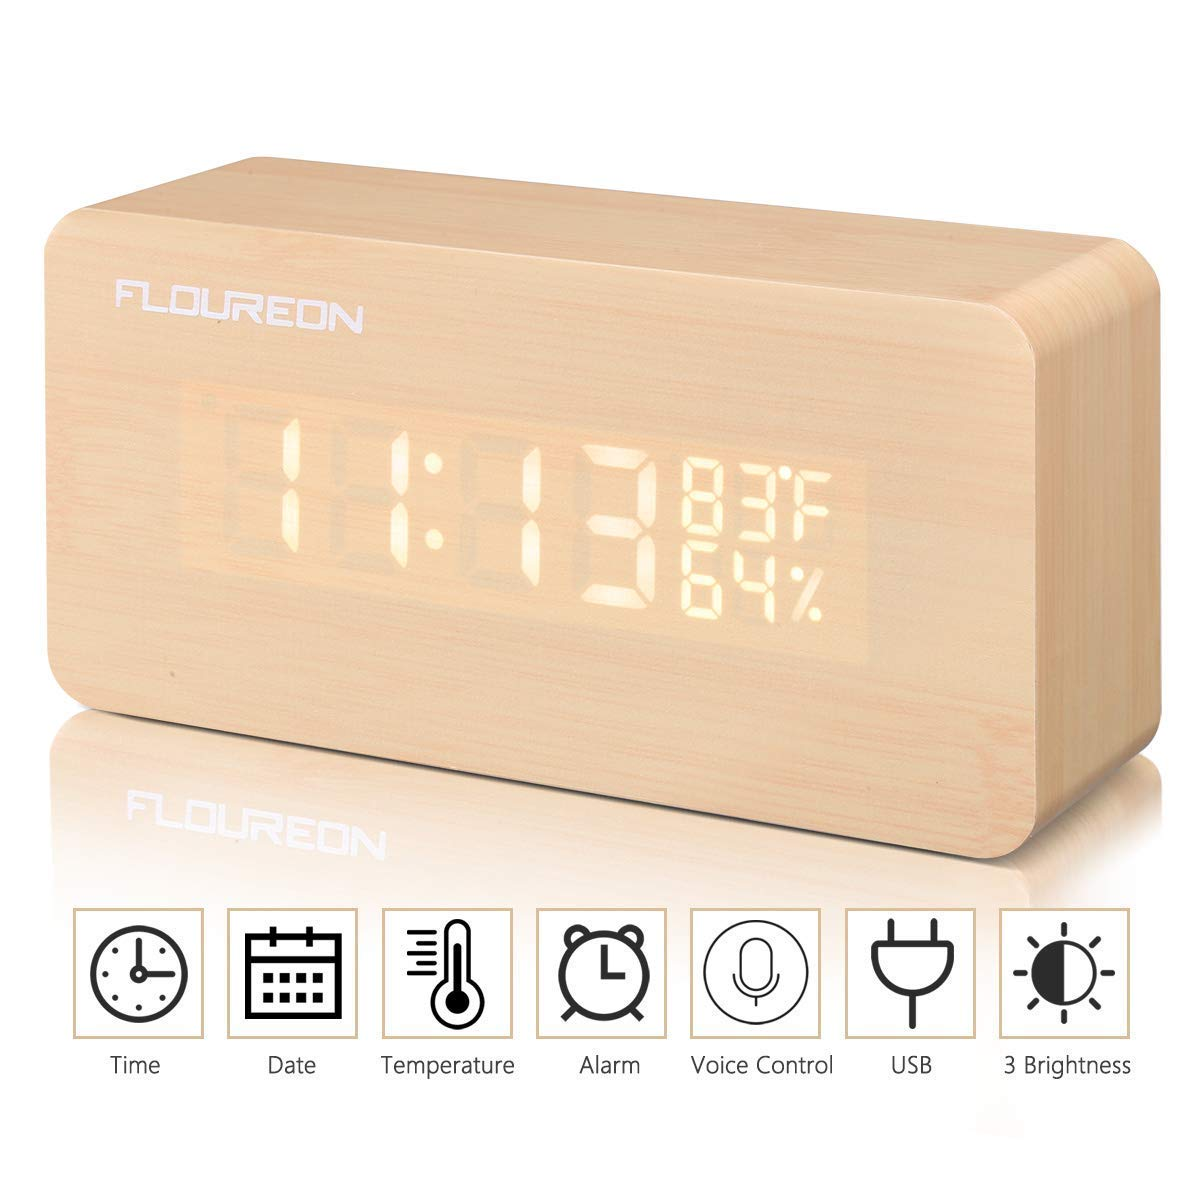 FLOUREON Wooden LED Cube Digital Desk Alarm Clock Calendar/Time/Temperature/Humidity Displaying with 3 Brightness Adjustable and 3 Set of Alarm, Dual Power, Voice Control Black